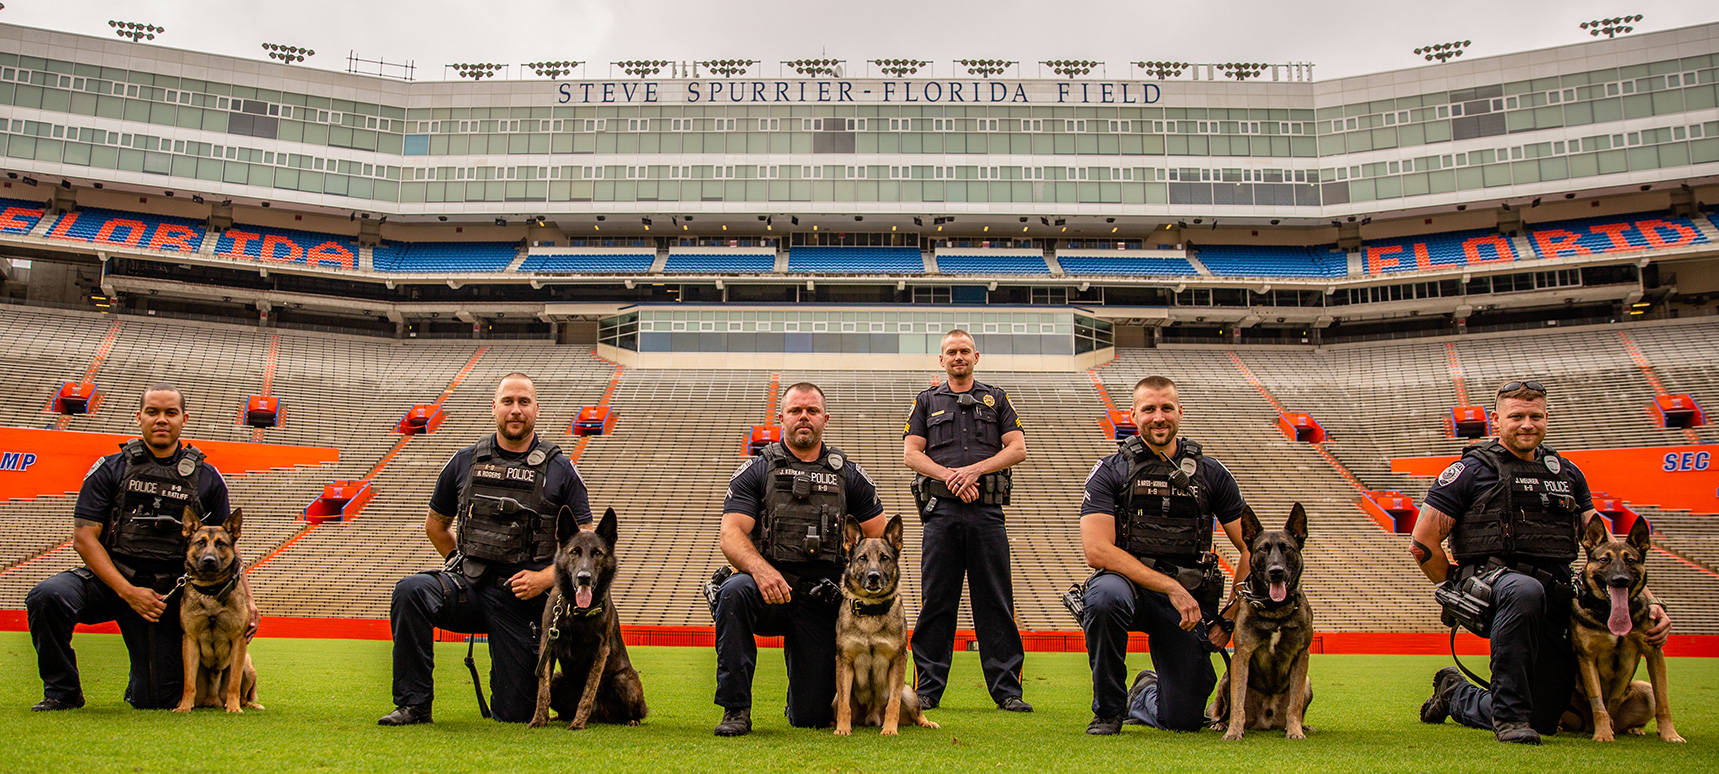 The K9 Officers and their K9 Partners on the field at Ben Hill Griffin Stadium